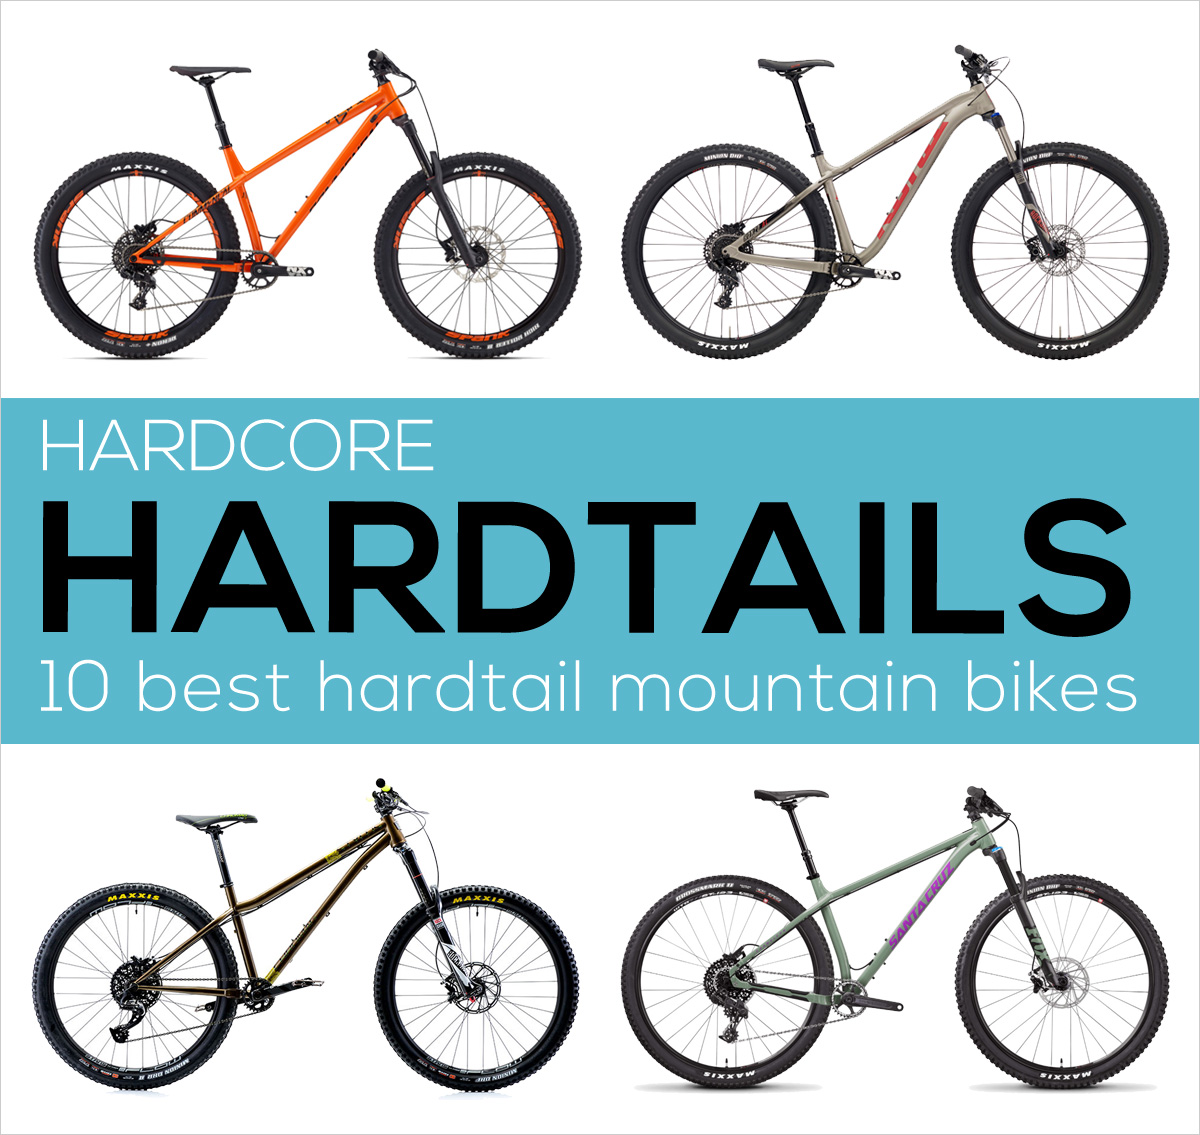 The 10 Best Hardcore Hardtails for Getting Rowdy